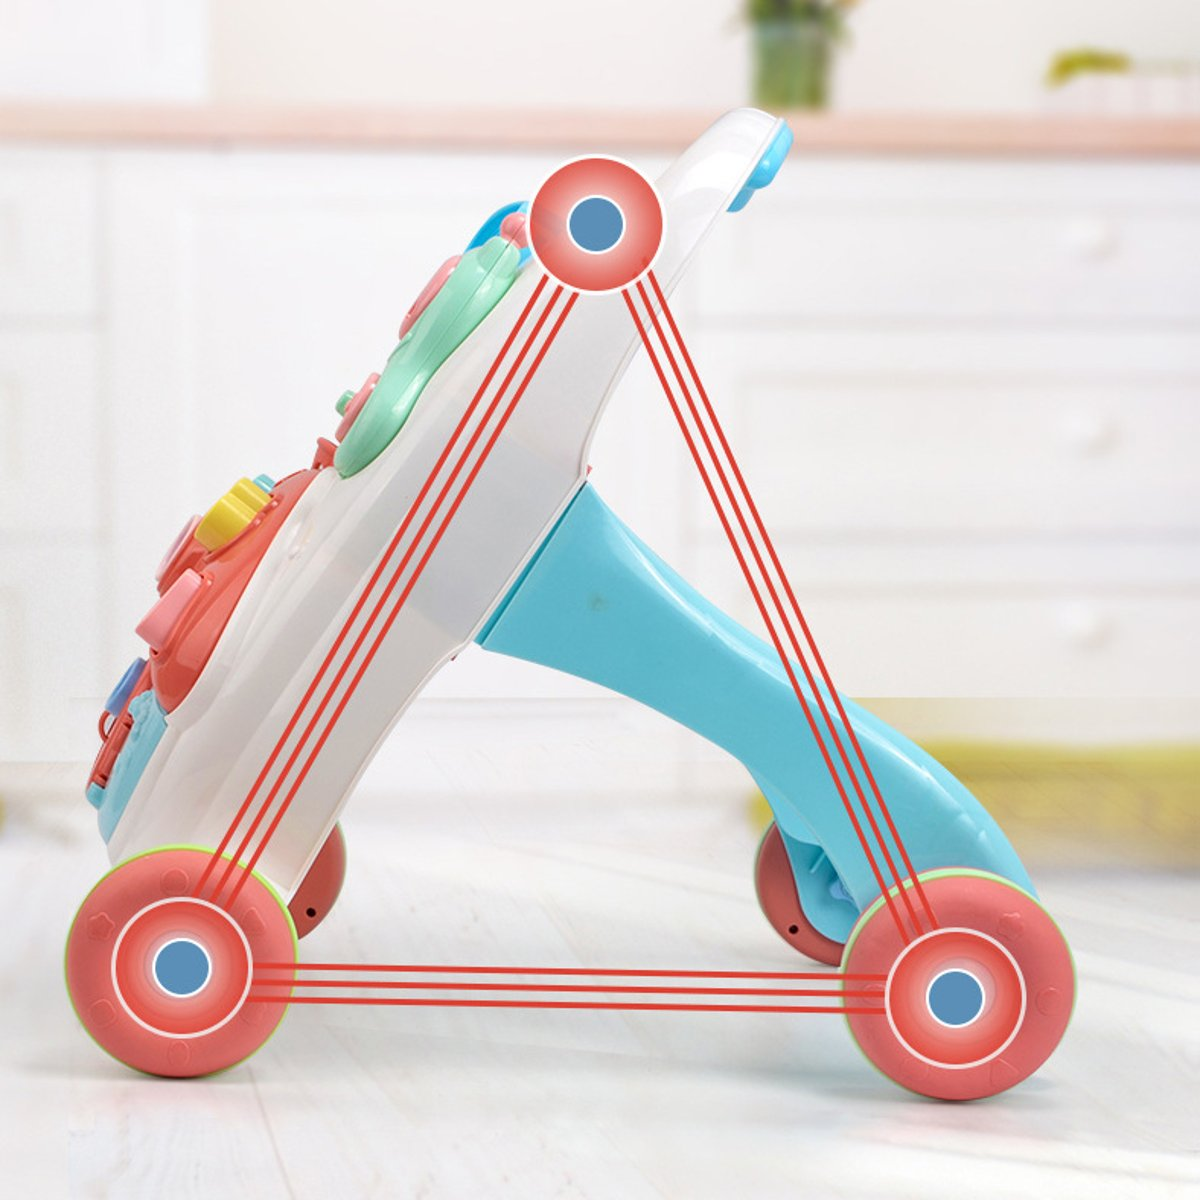 2-in-1 Baby Walker Toys Multifuctional Non-slip Toddler Trolley Sit-to-Stand ABS Musical Walker With Water Tank for Toddler enlarge